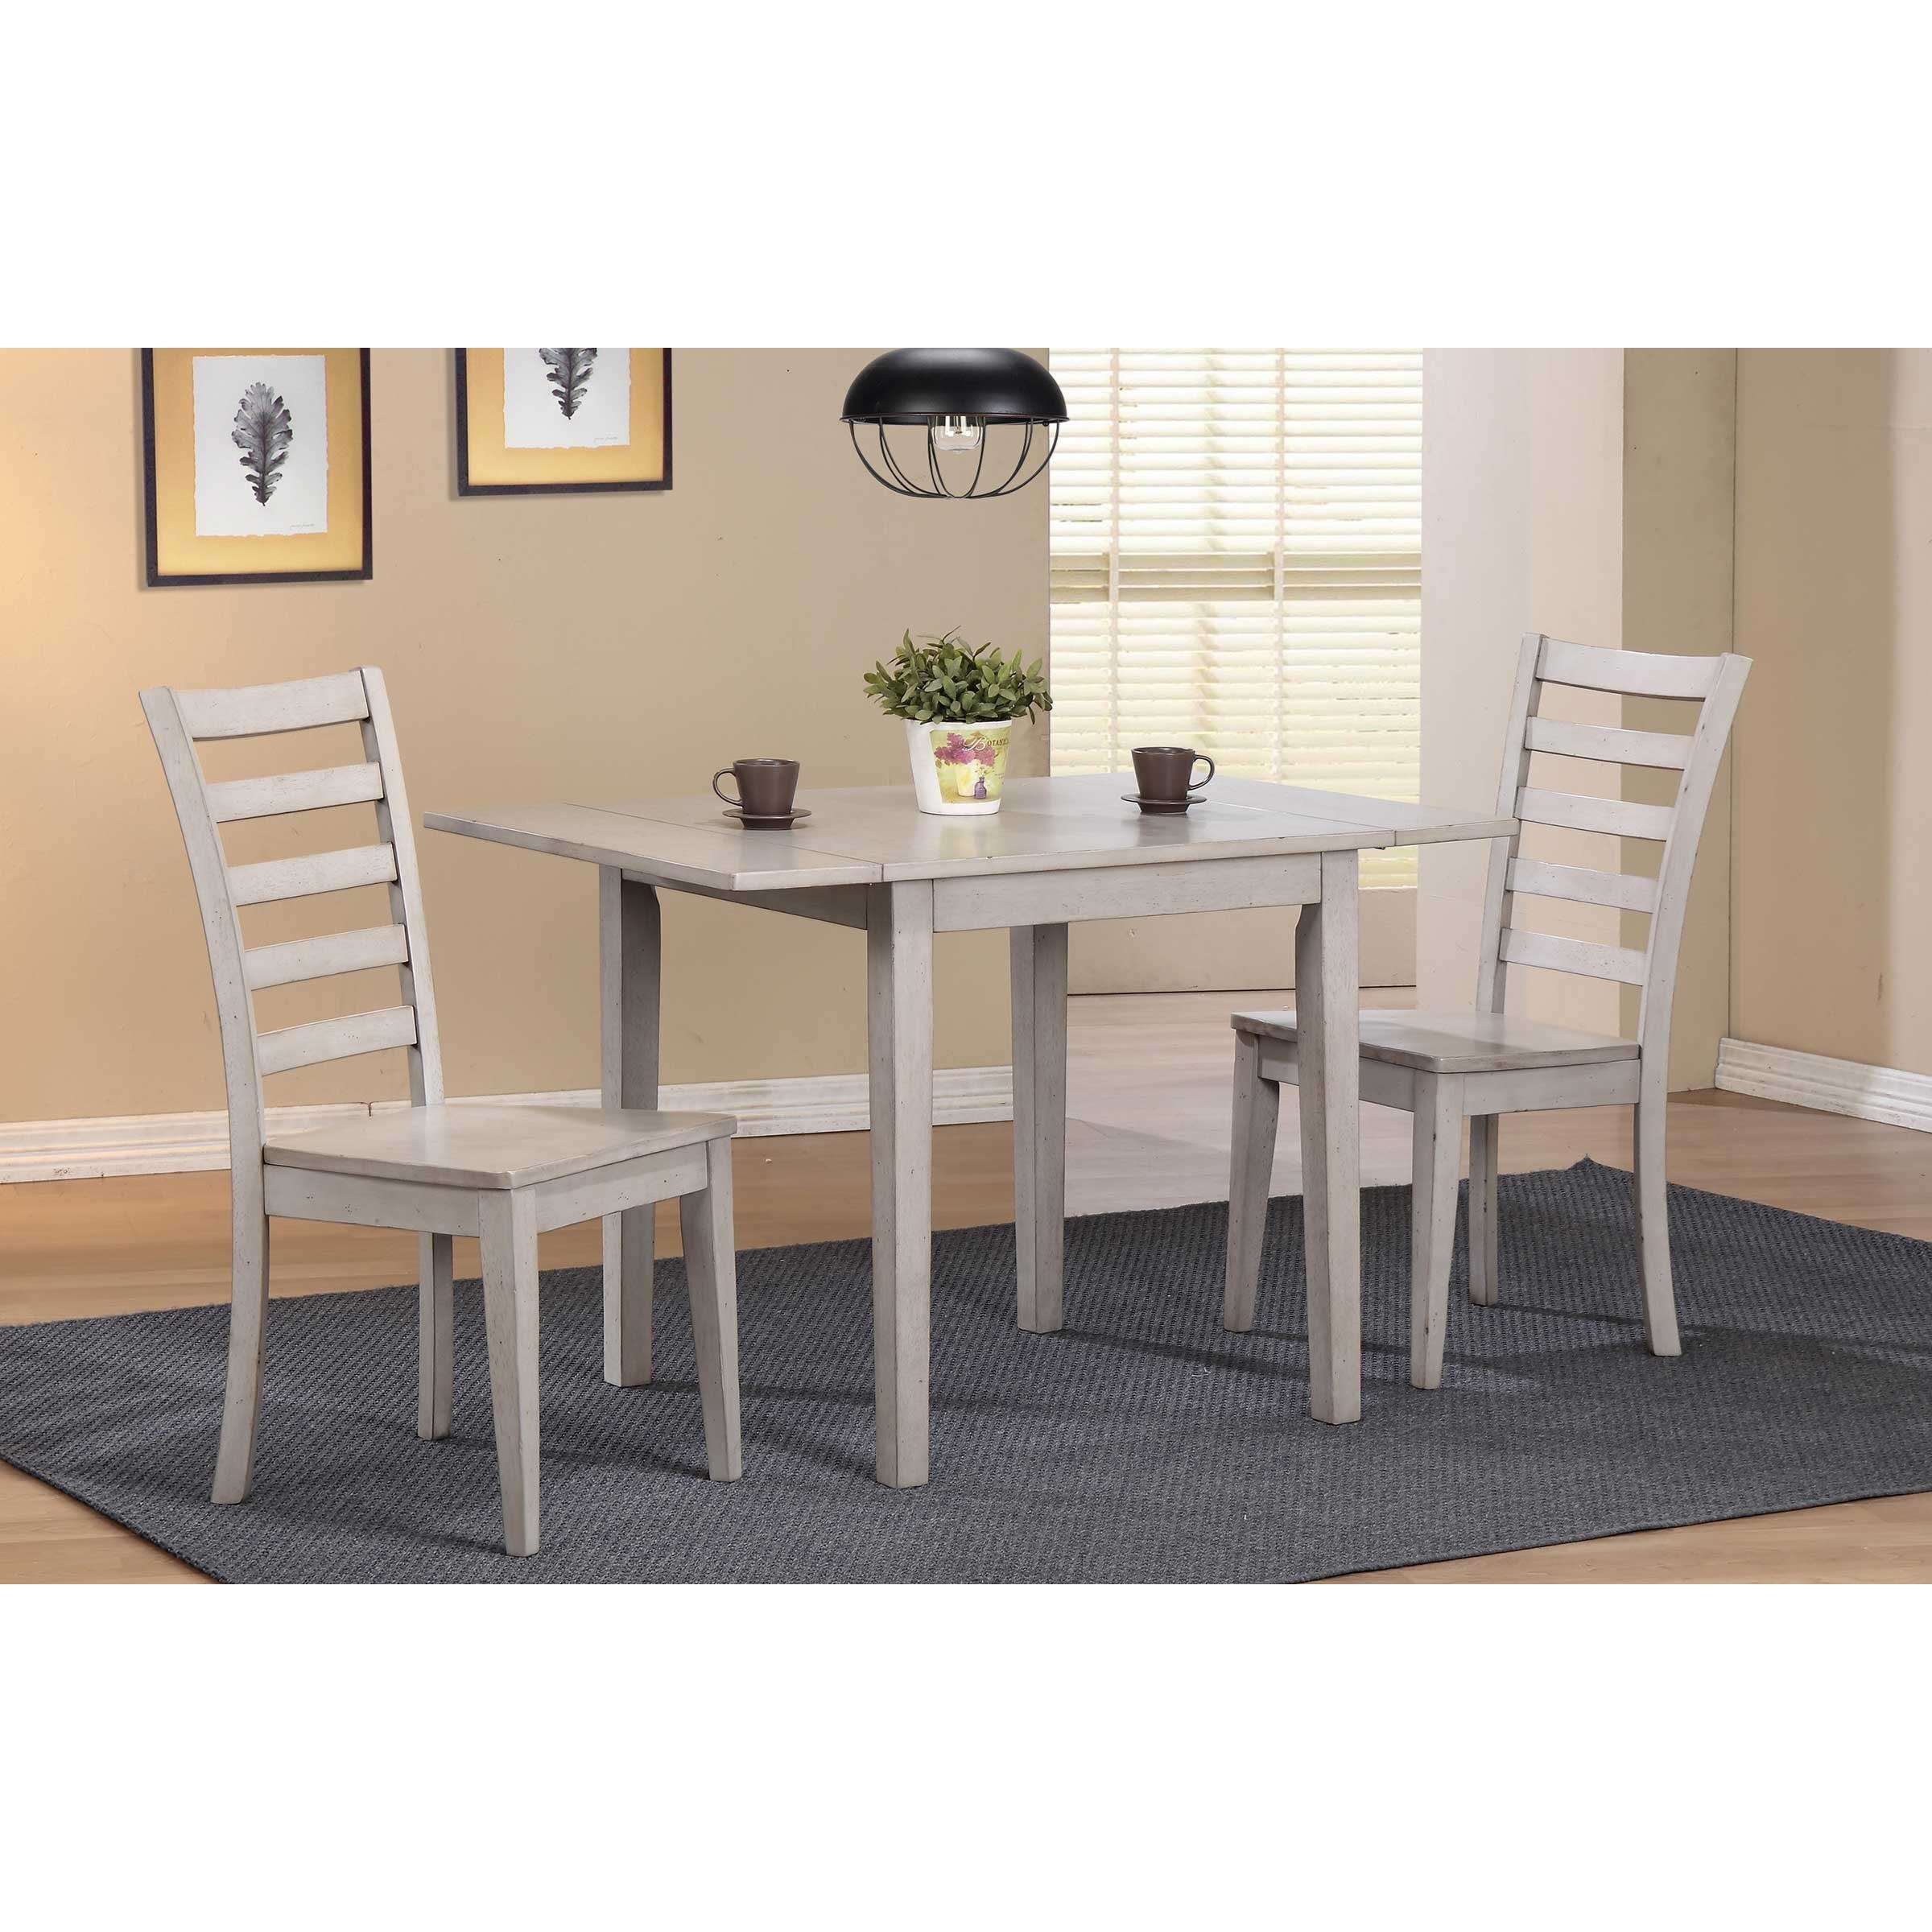 Carmel Dropleaf Table by Winners Only at Crowley Furniture & Mattress